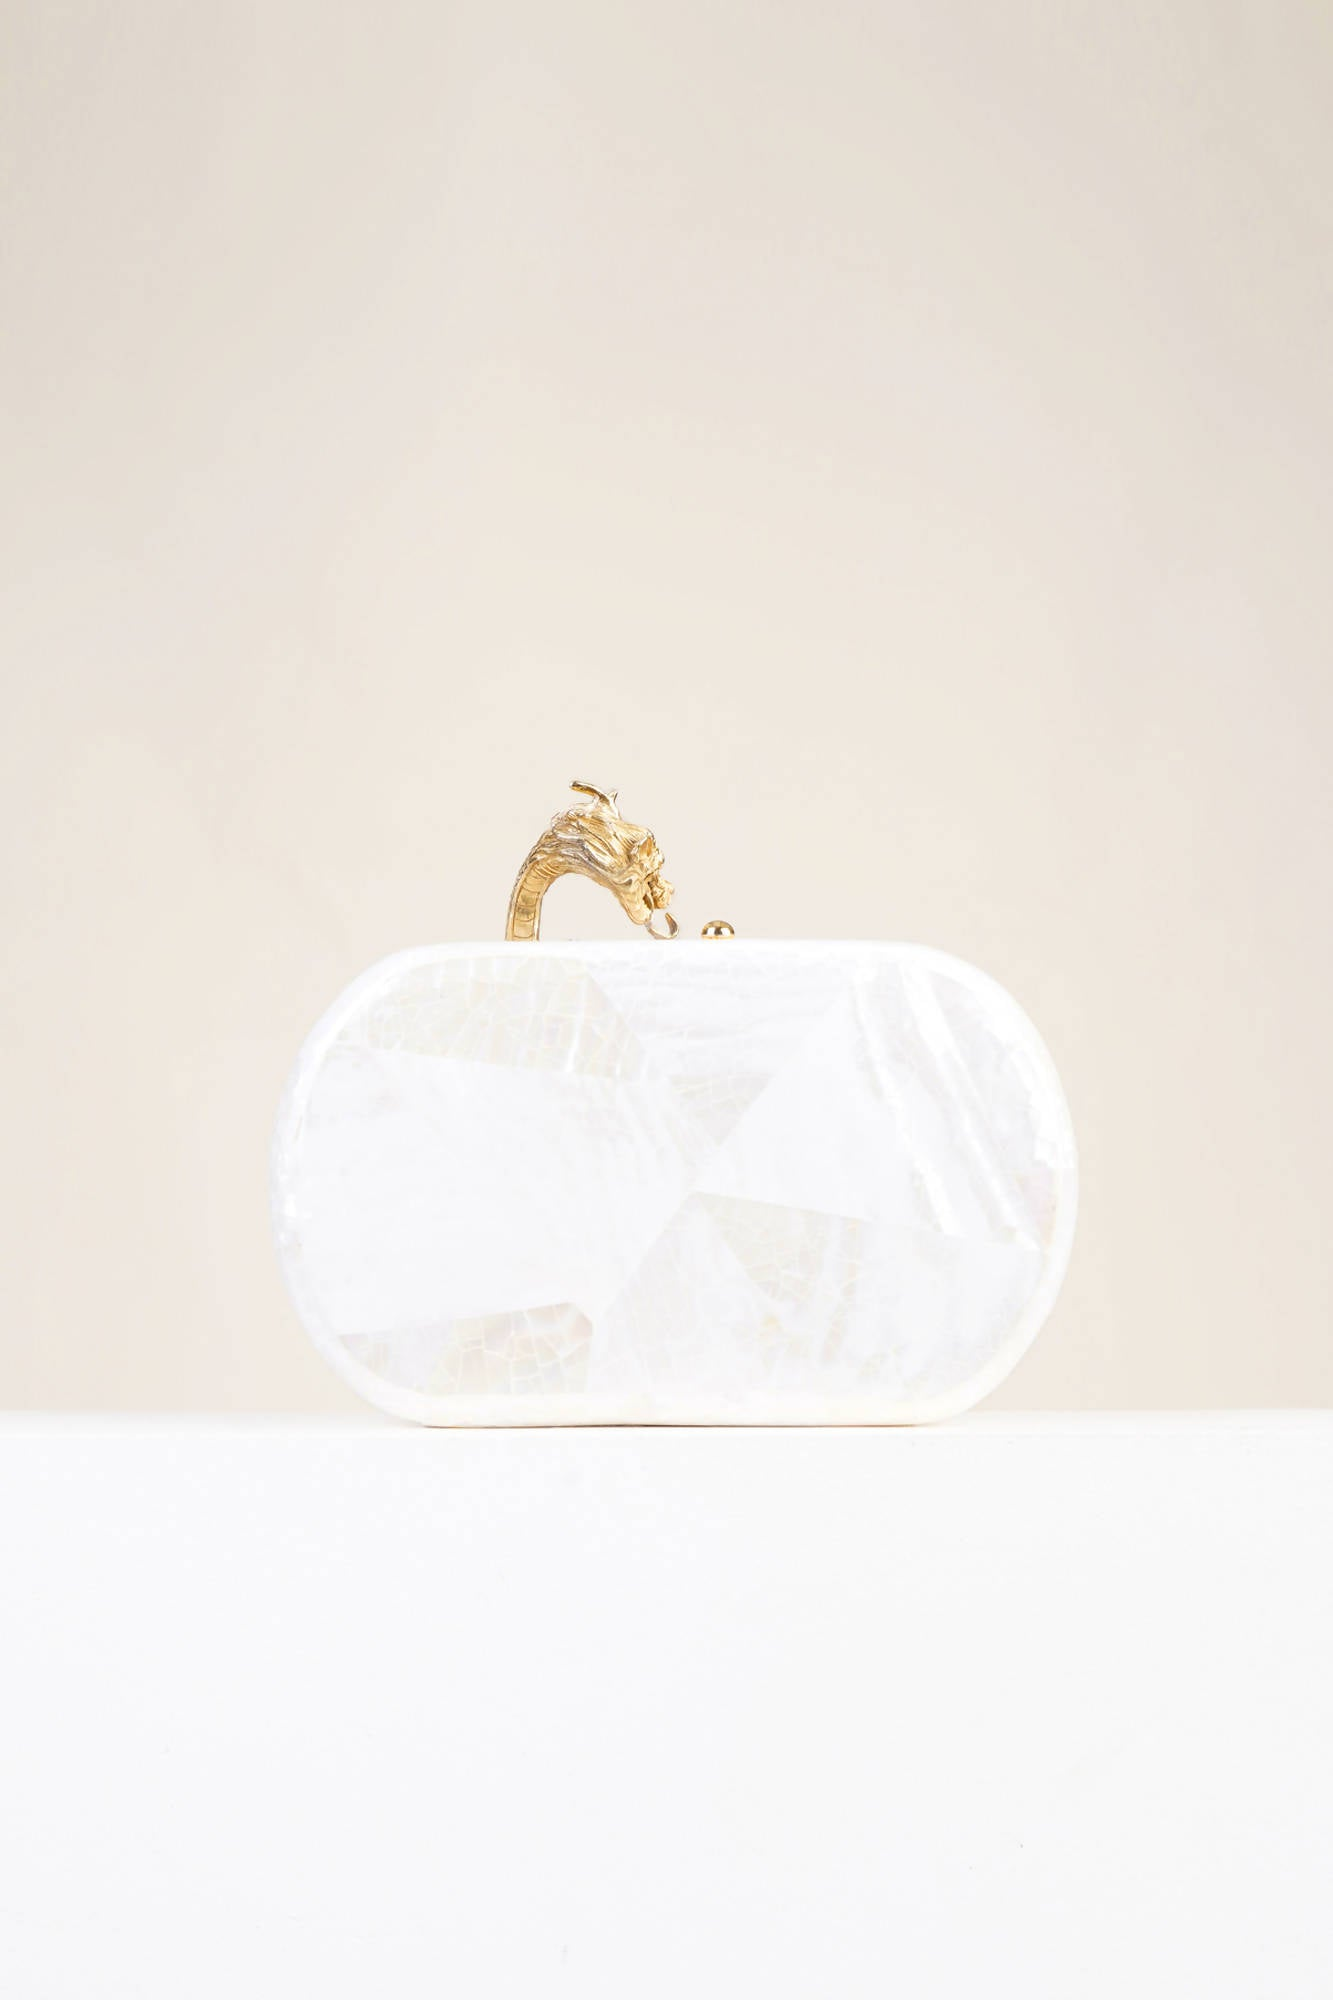 Suzy Wong in White Shell with Gold Hardware